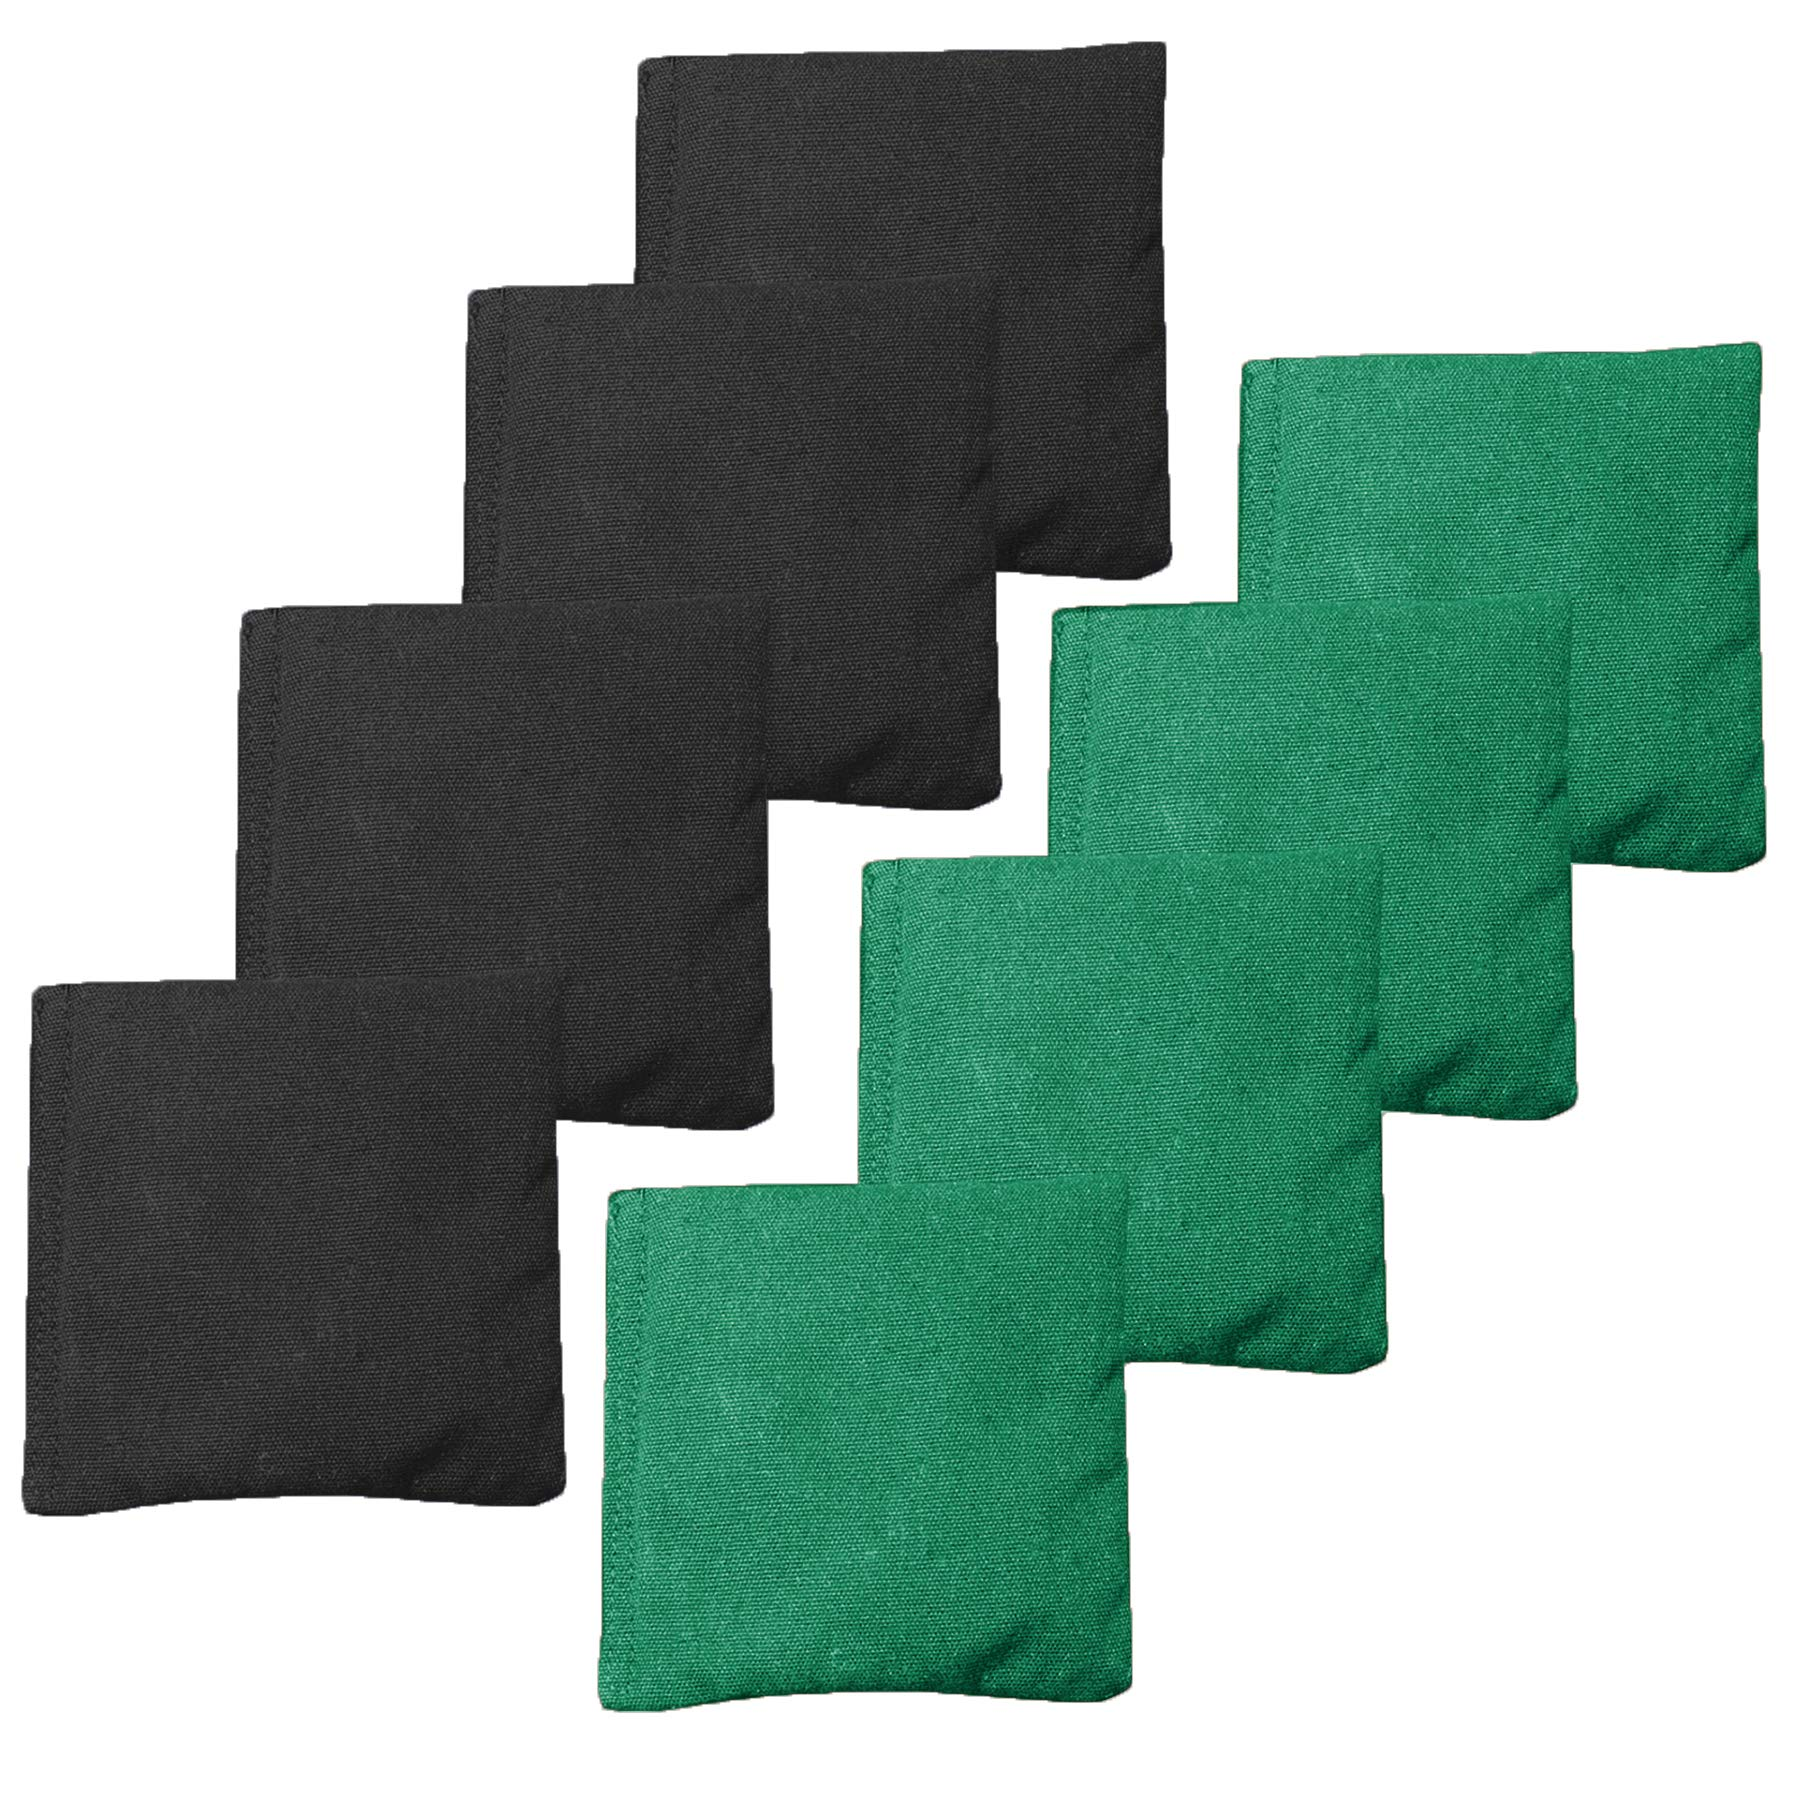 Weather Resistant Cornhole Bean Bags Set of 8 - Regulation Size & Weight - Green & Black by Play Platoon